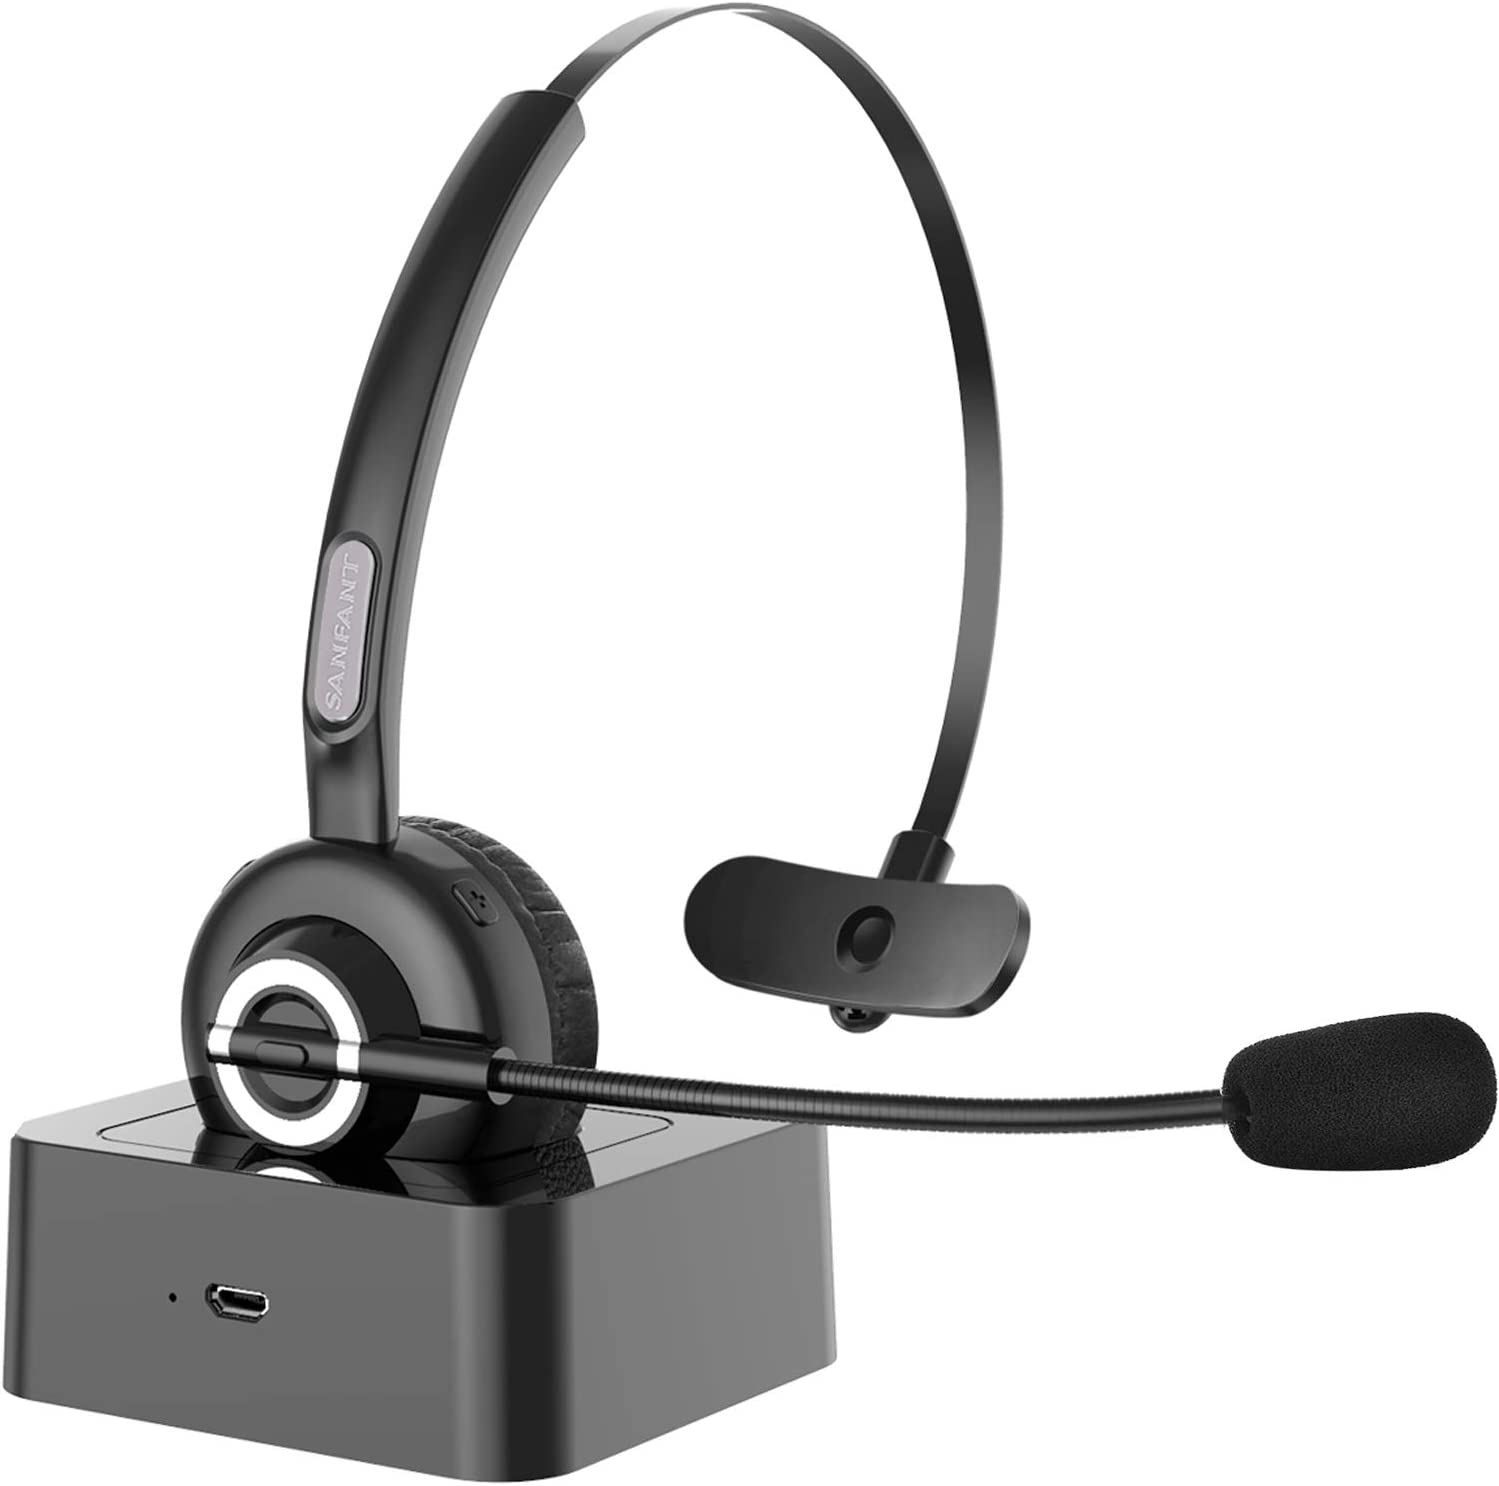 On-Ear Car Headset for Cell Phone//PC//Office//Car Newest V5.0 Sanfant Trucker Bluetooth Headset with Mic Noise Canceling /& Flexible 18-hrs Talk Time Office Wireless Headset Black Bluetooth Headset